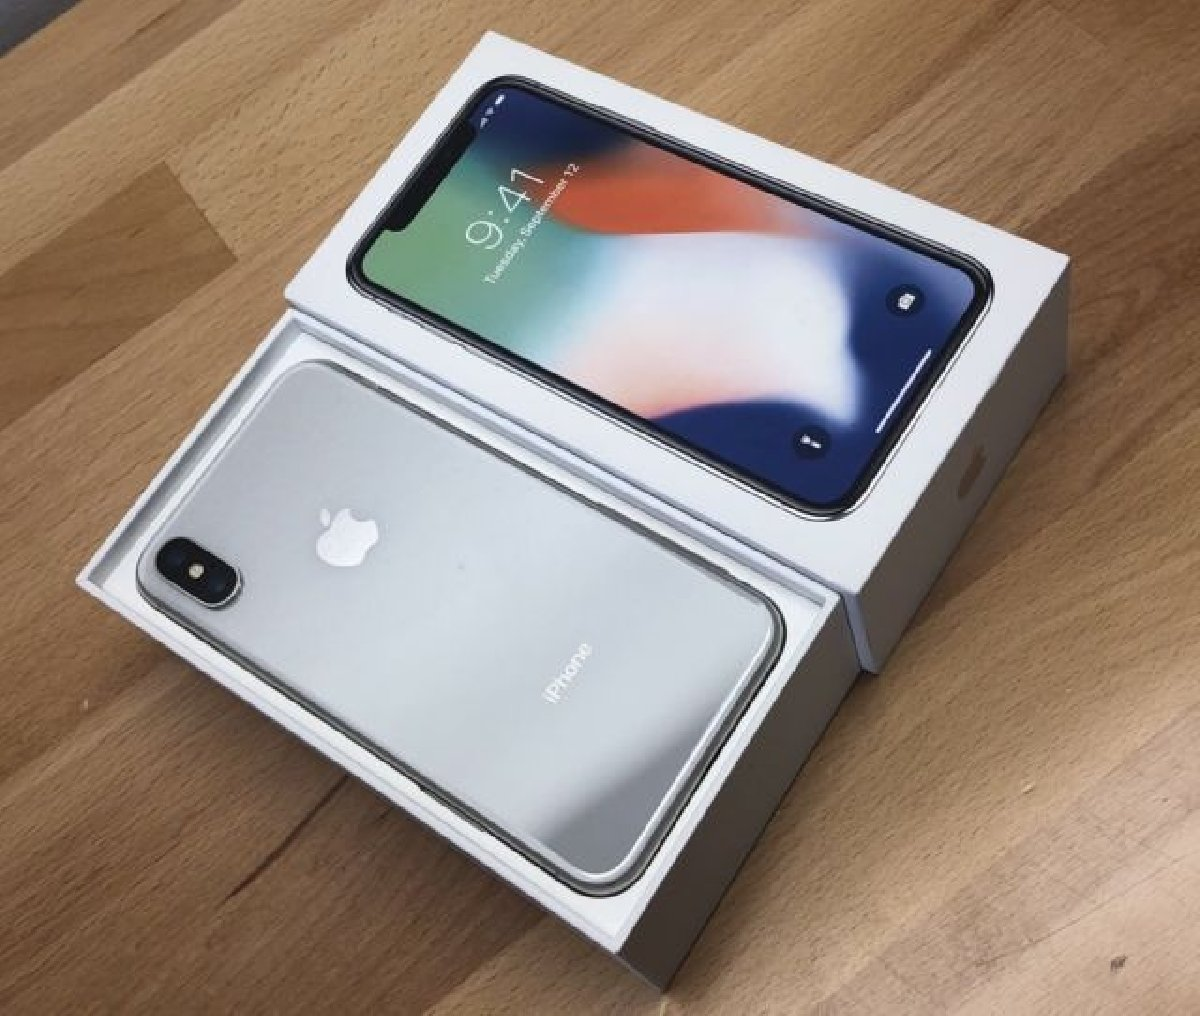 Apple IPhone X - 256GB +19402380146 for sale in Jamaica Kingston St Andrew - Phones